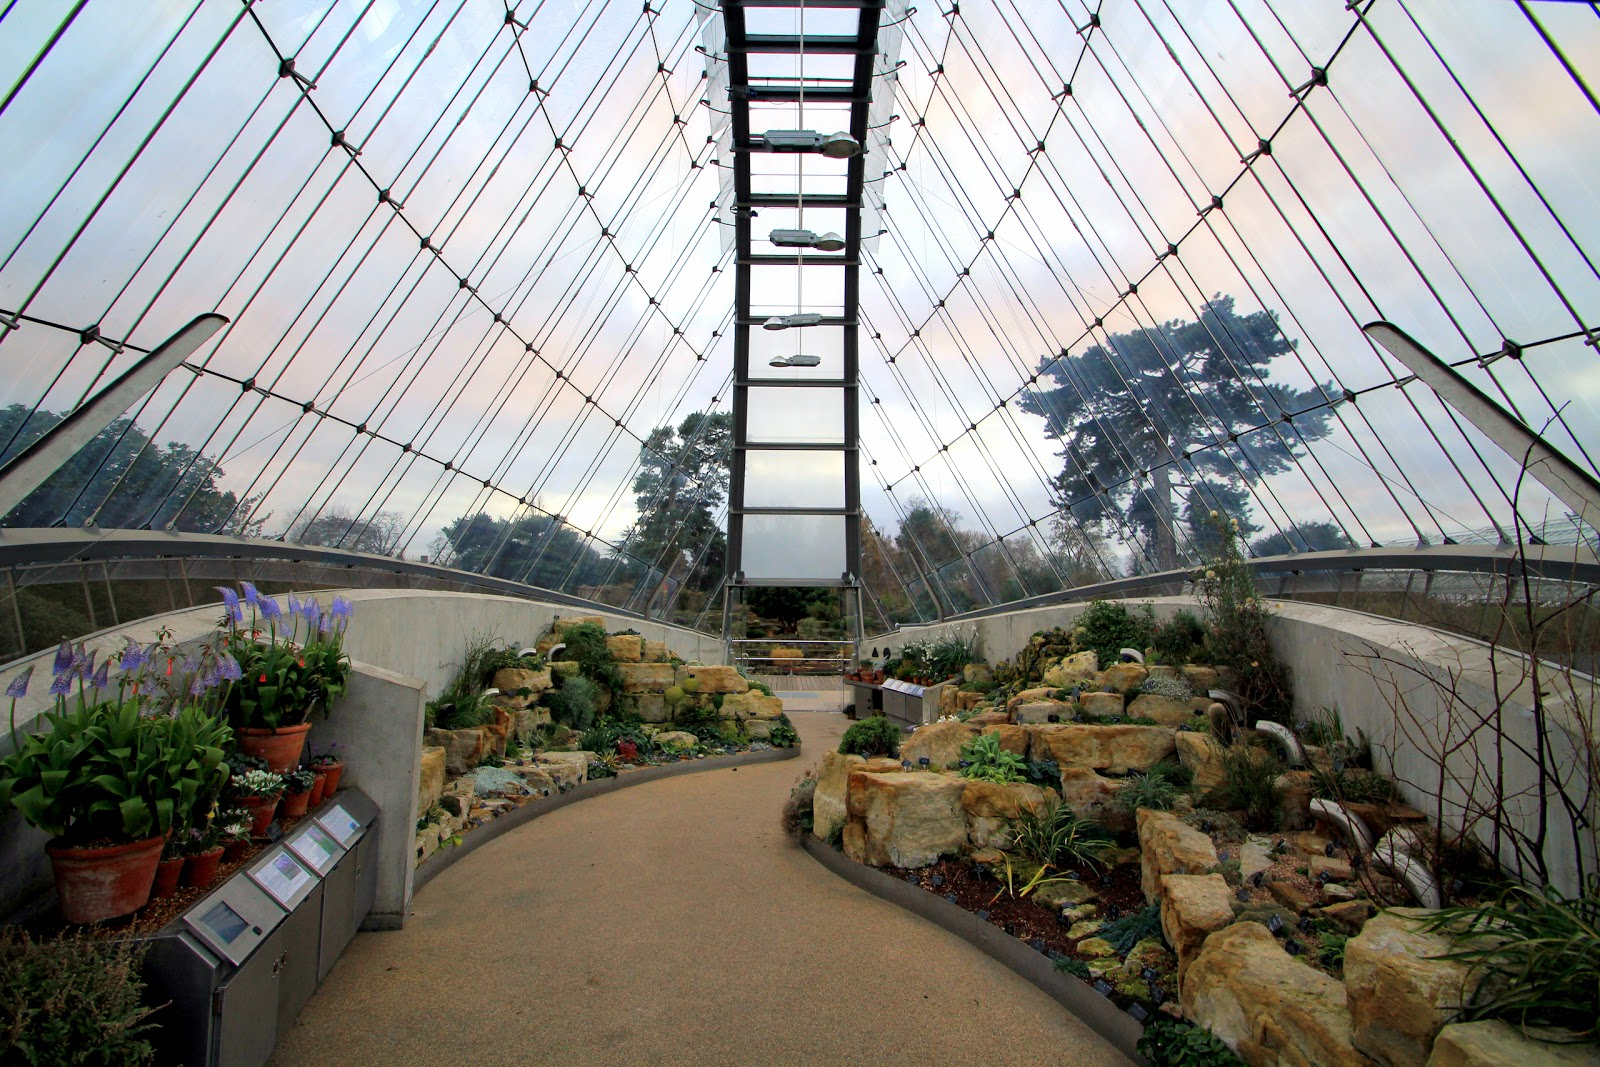 An architectural pilgrimage davies alpine house at kew for Architectural greenhouse